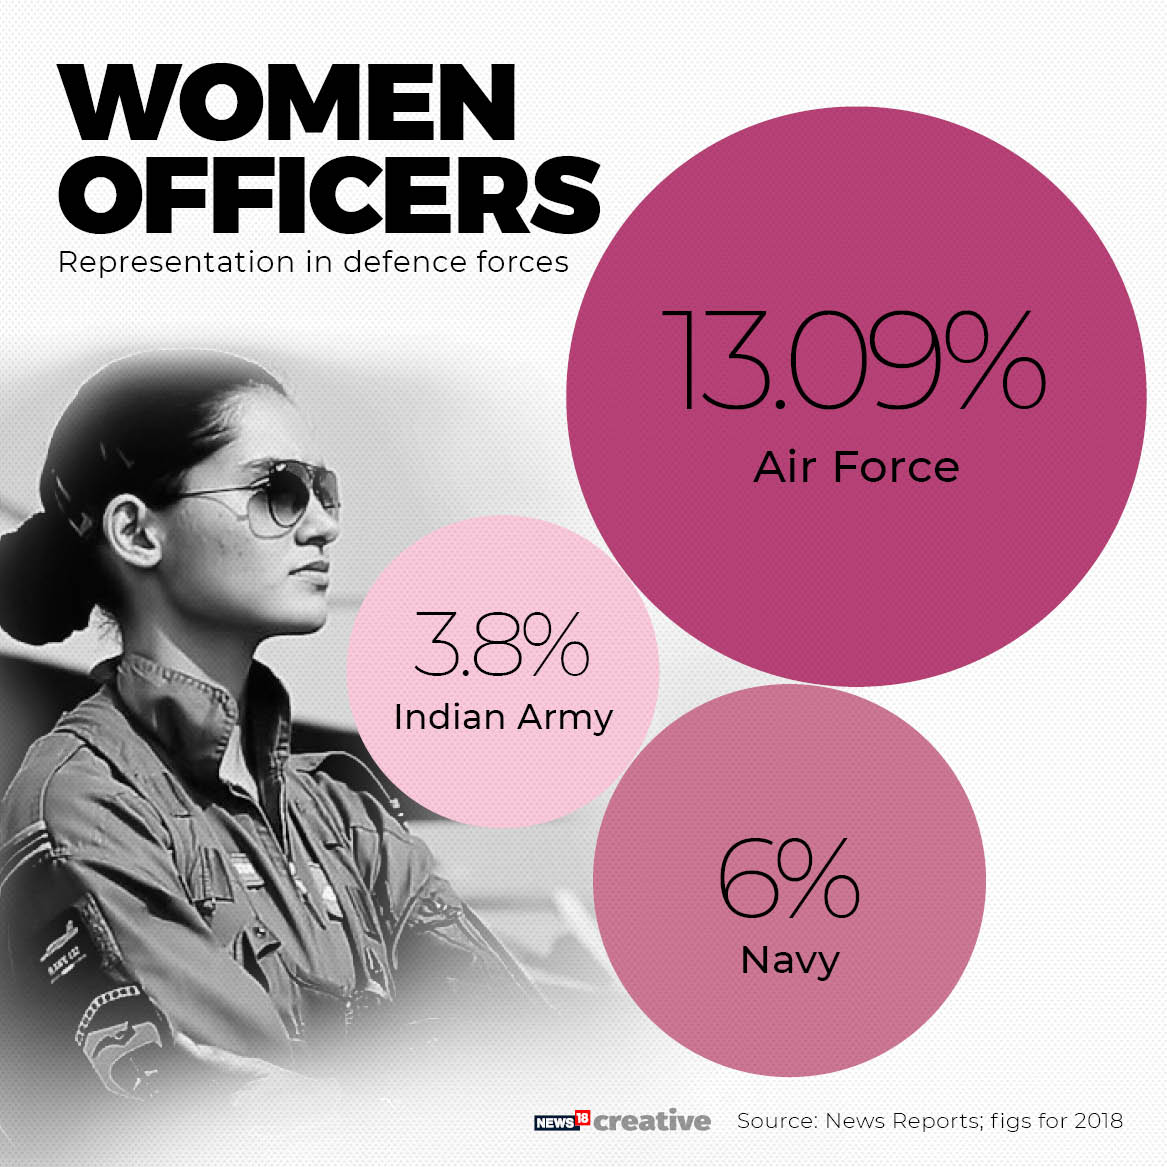 Women representation in the defence forces